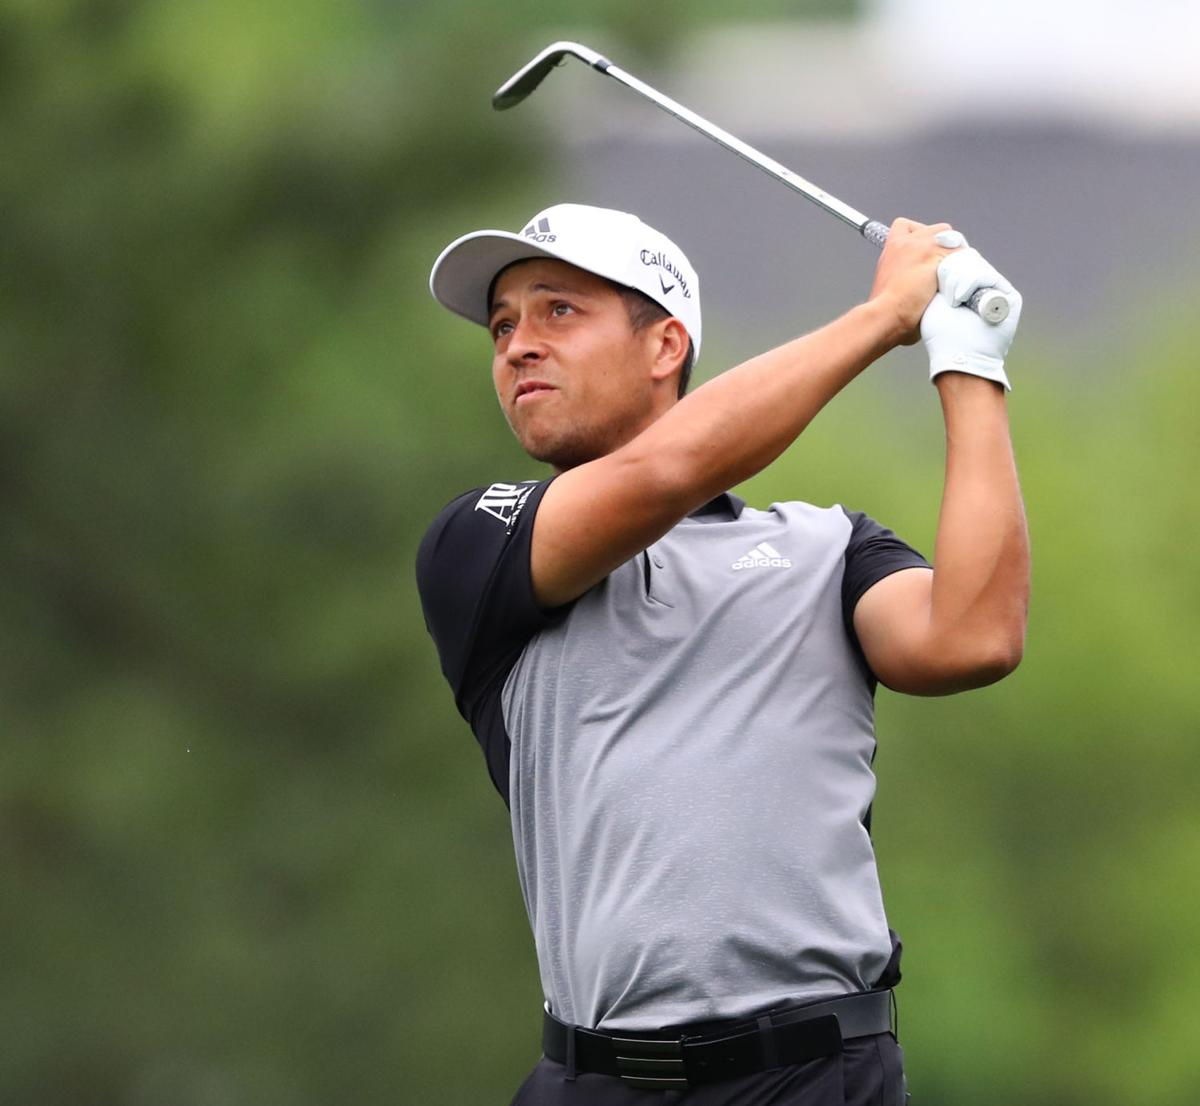 Xander Schauffele hits his fairway shot on 1 during the final round of the Masters on Sunday, April 14, 2019, in Augusta, Ga.